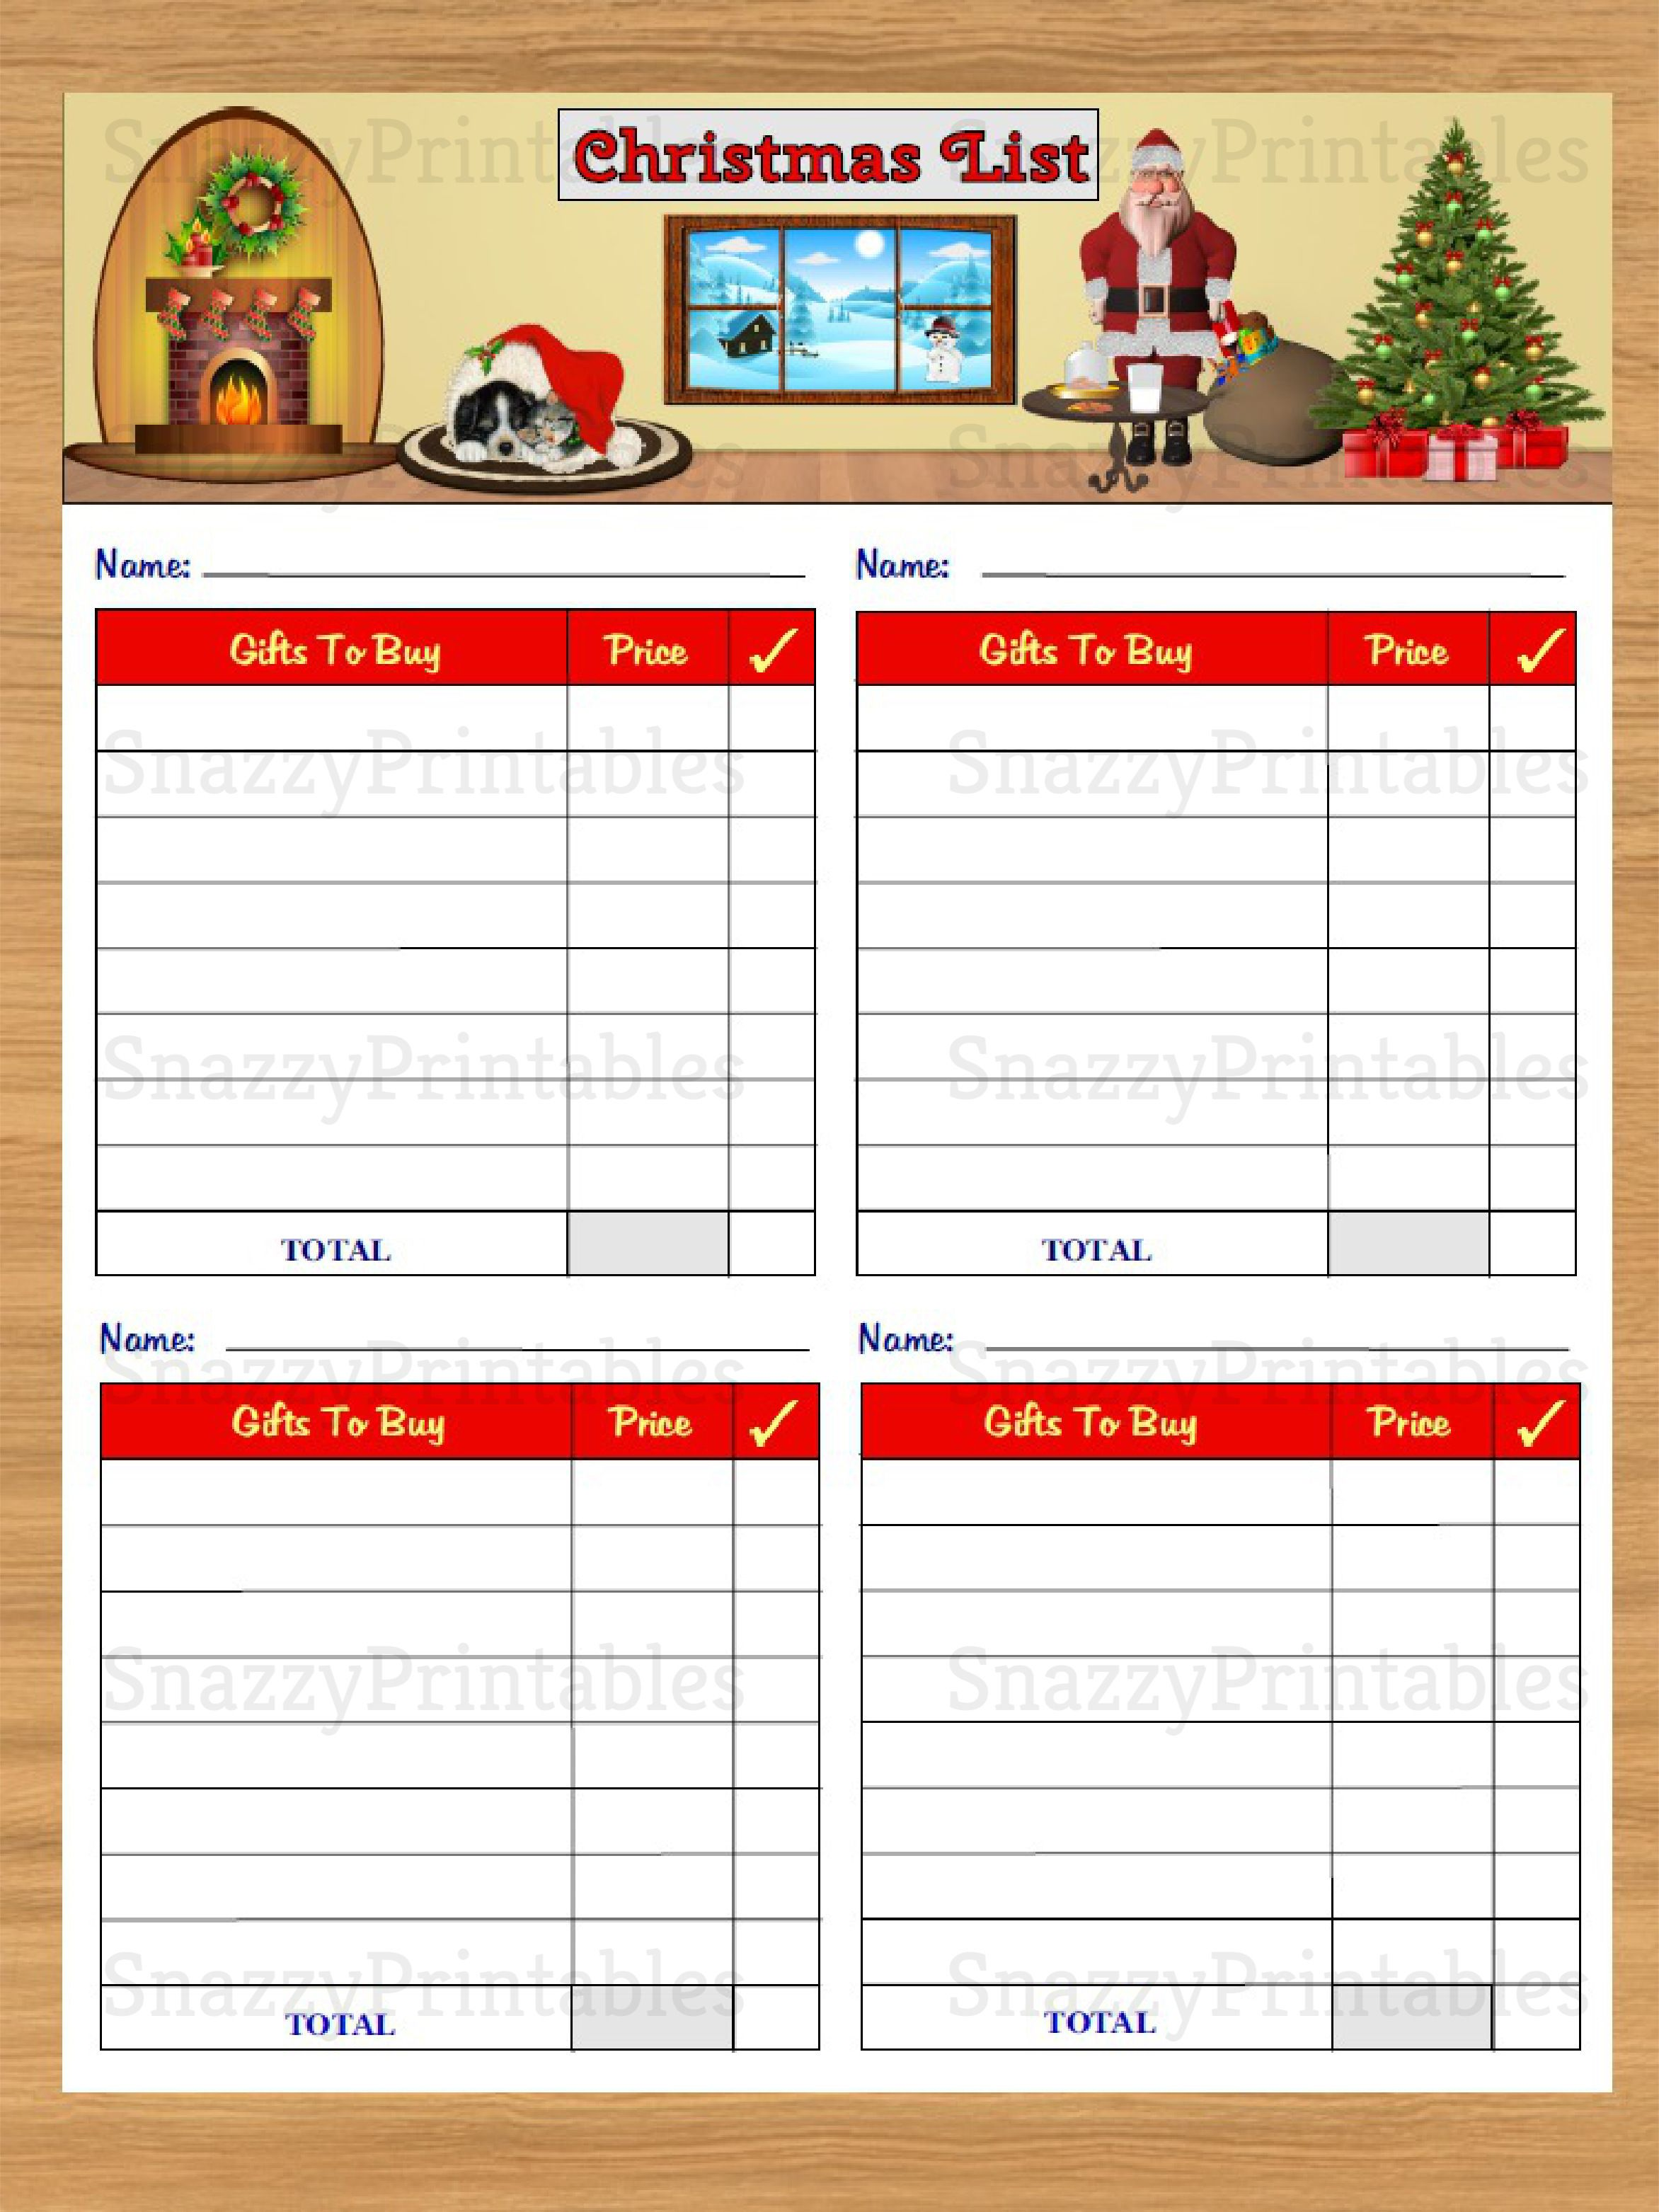 Christmas T List Printable